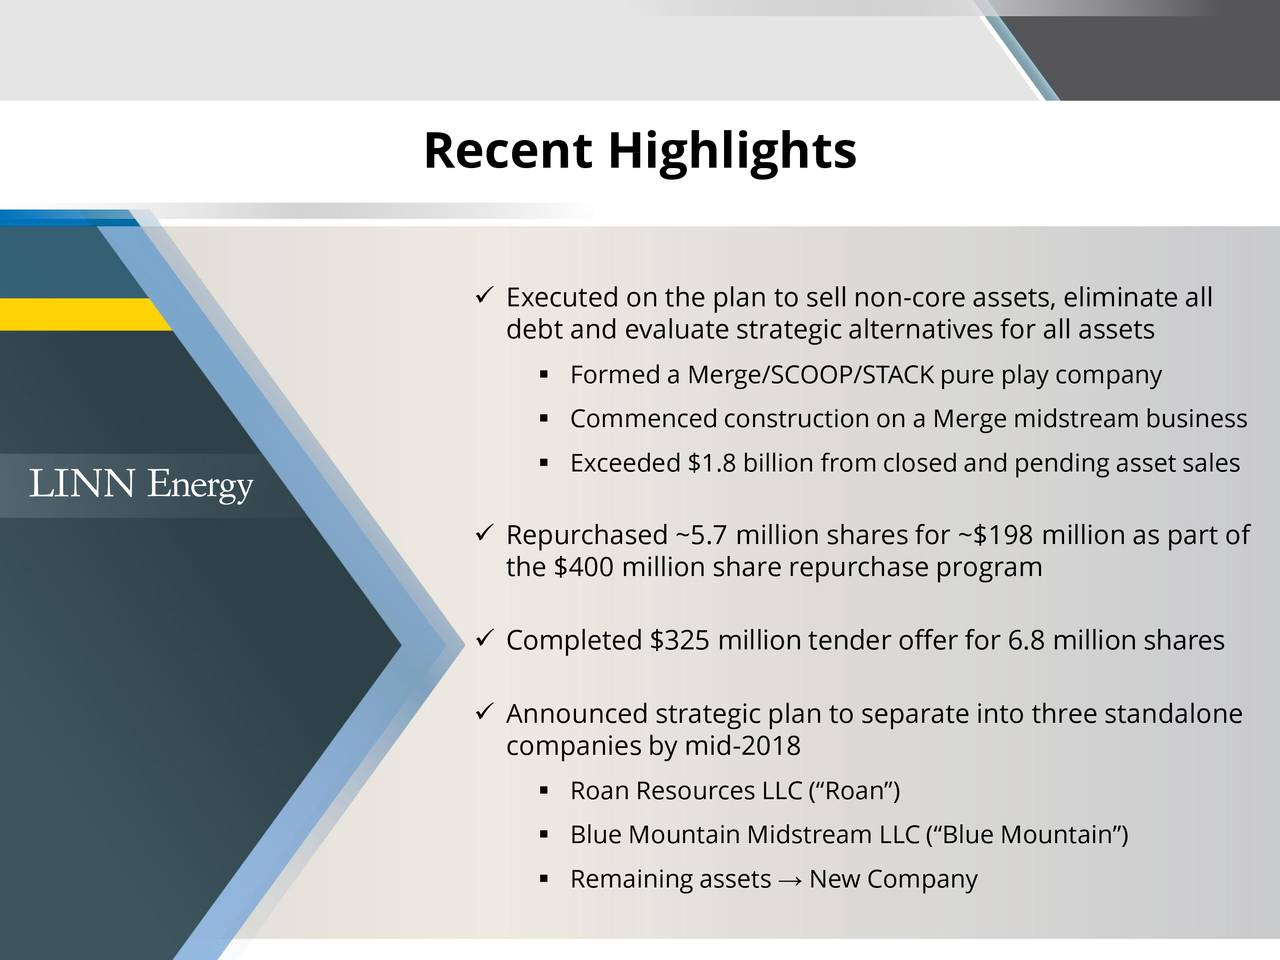 """ Executed on the plan to sell non-core assets, eliminate all debt and evaluate strategic alternatives for all assets  Formed a Merge/SCOOP/STACK pure play company  Commenced construction on a Merge midstream business  Exceeded $1.8 billion from closed and pending asset sales  Repurchased ~5.7 million shares for ~$198 million as part of the $400 million share repurchase program  Completed $325 million tender offer for 6.8 million shares  Announced strategic plan to separate into three standalone companies by mid-2018  Roan Resources LLC (""""Roan"""")  Blue Mountain Midstream LLC (""""Blue Mountain"""")  Remaining assets → New Company"""